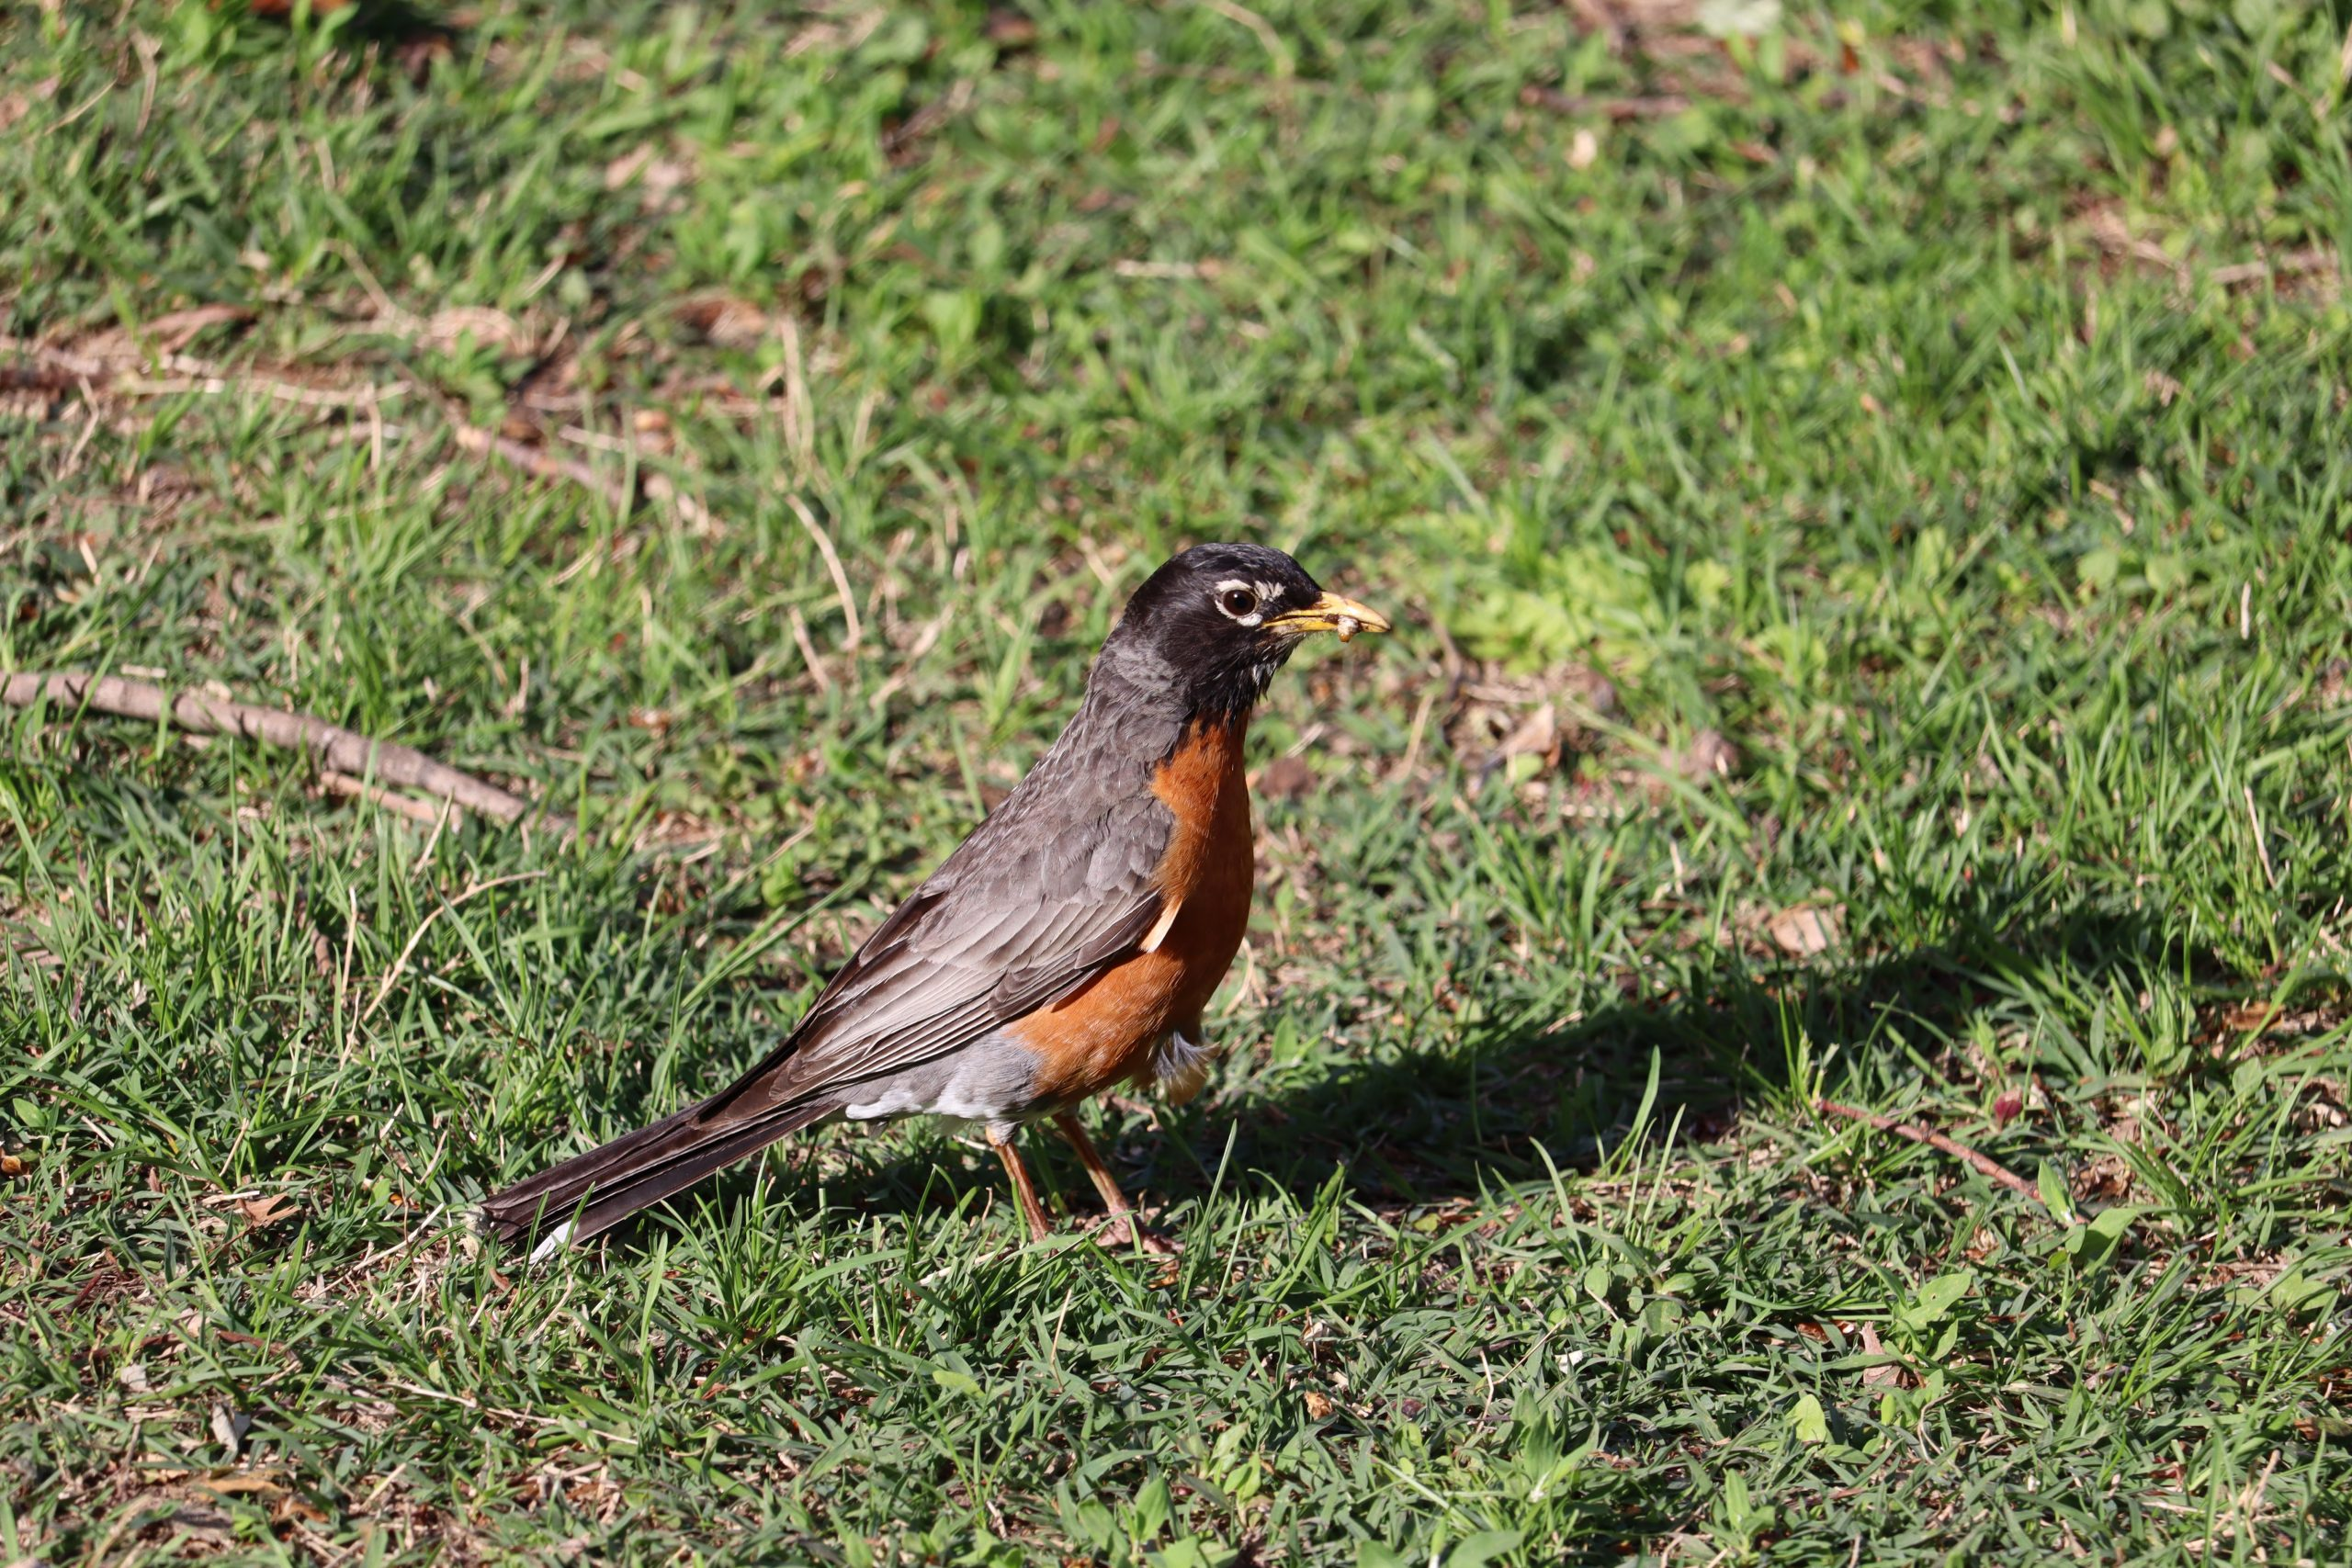 """I call this one """"Bird Beak & Grub Guts"""". If you look closely in the American Robin's beak, you'll see it has captured--and squashed--a grub. Cool!"""